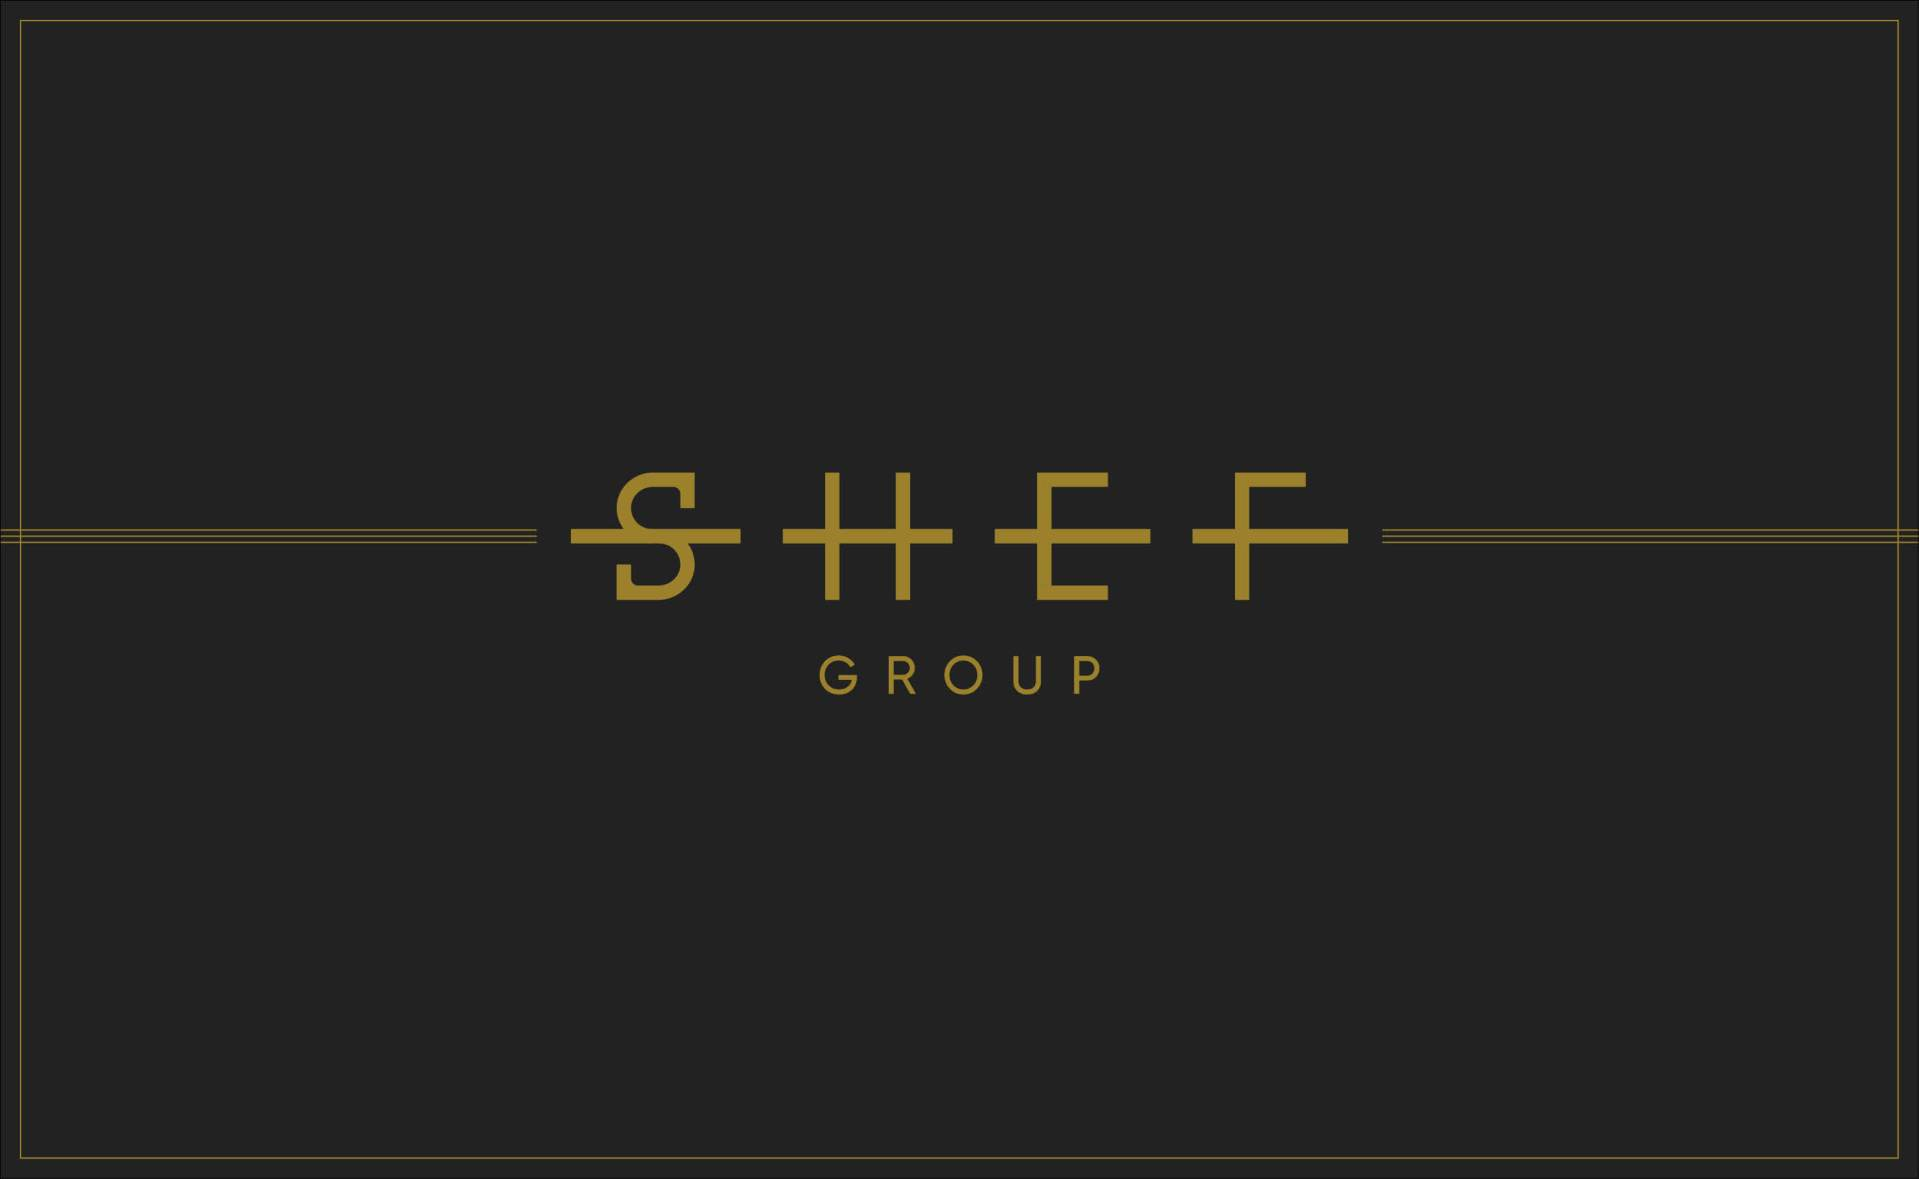 SHEF Group